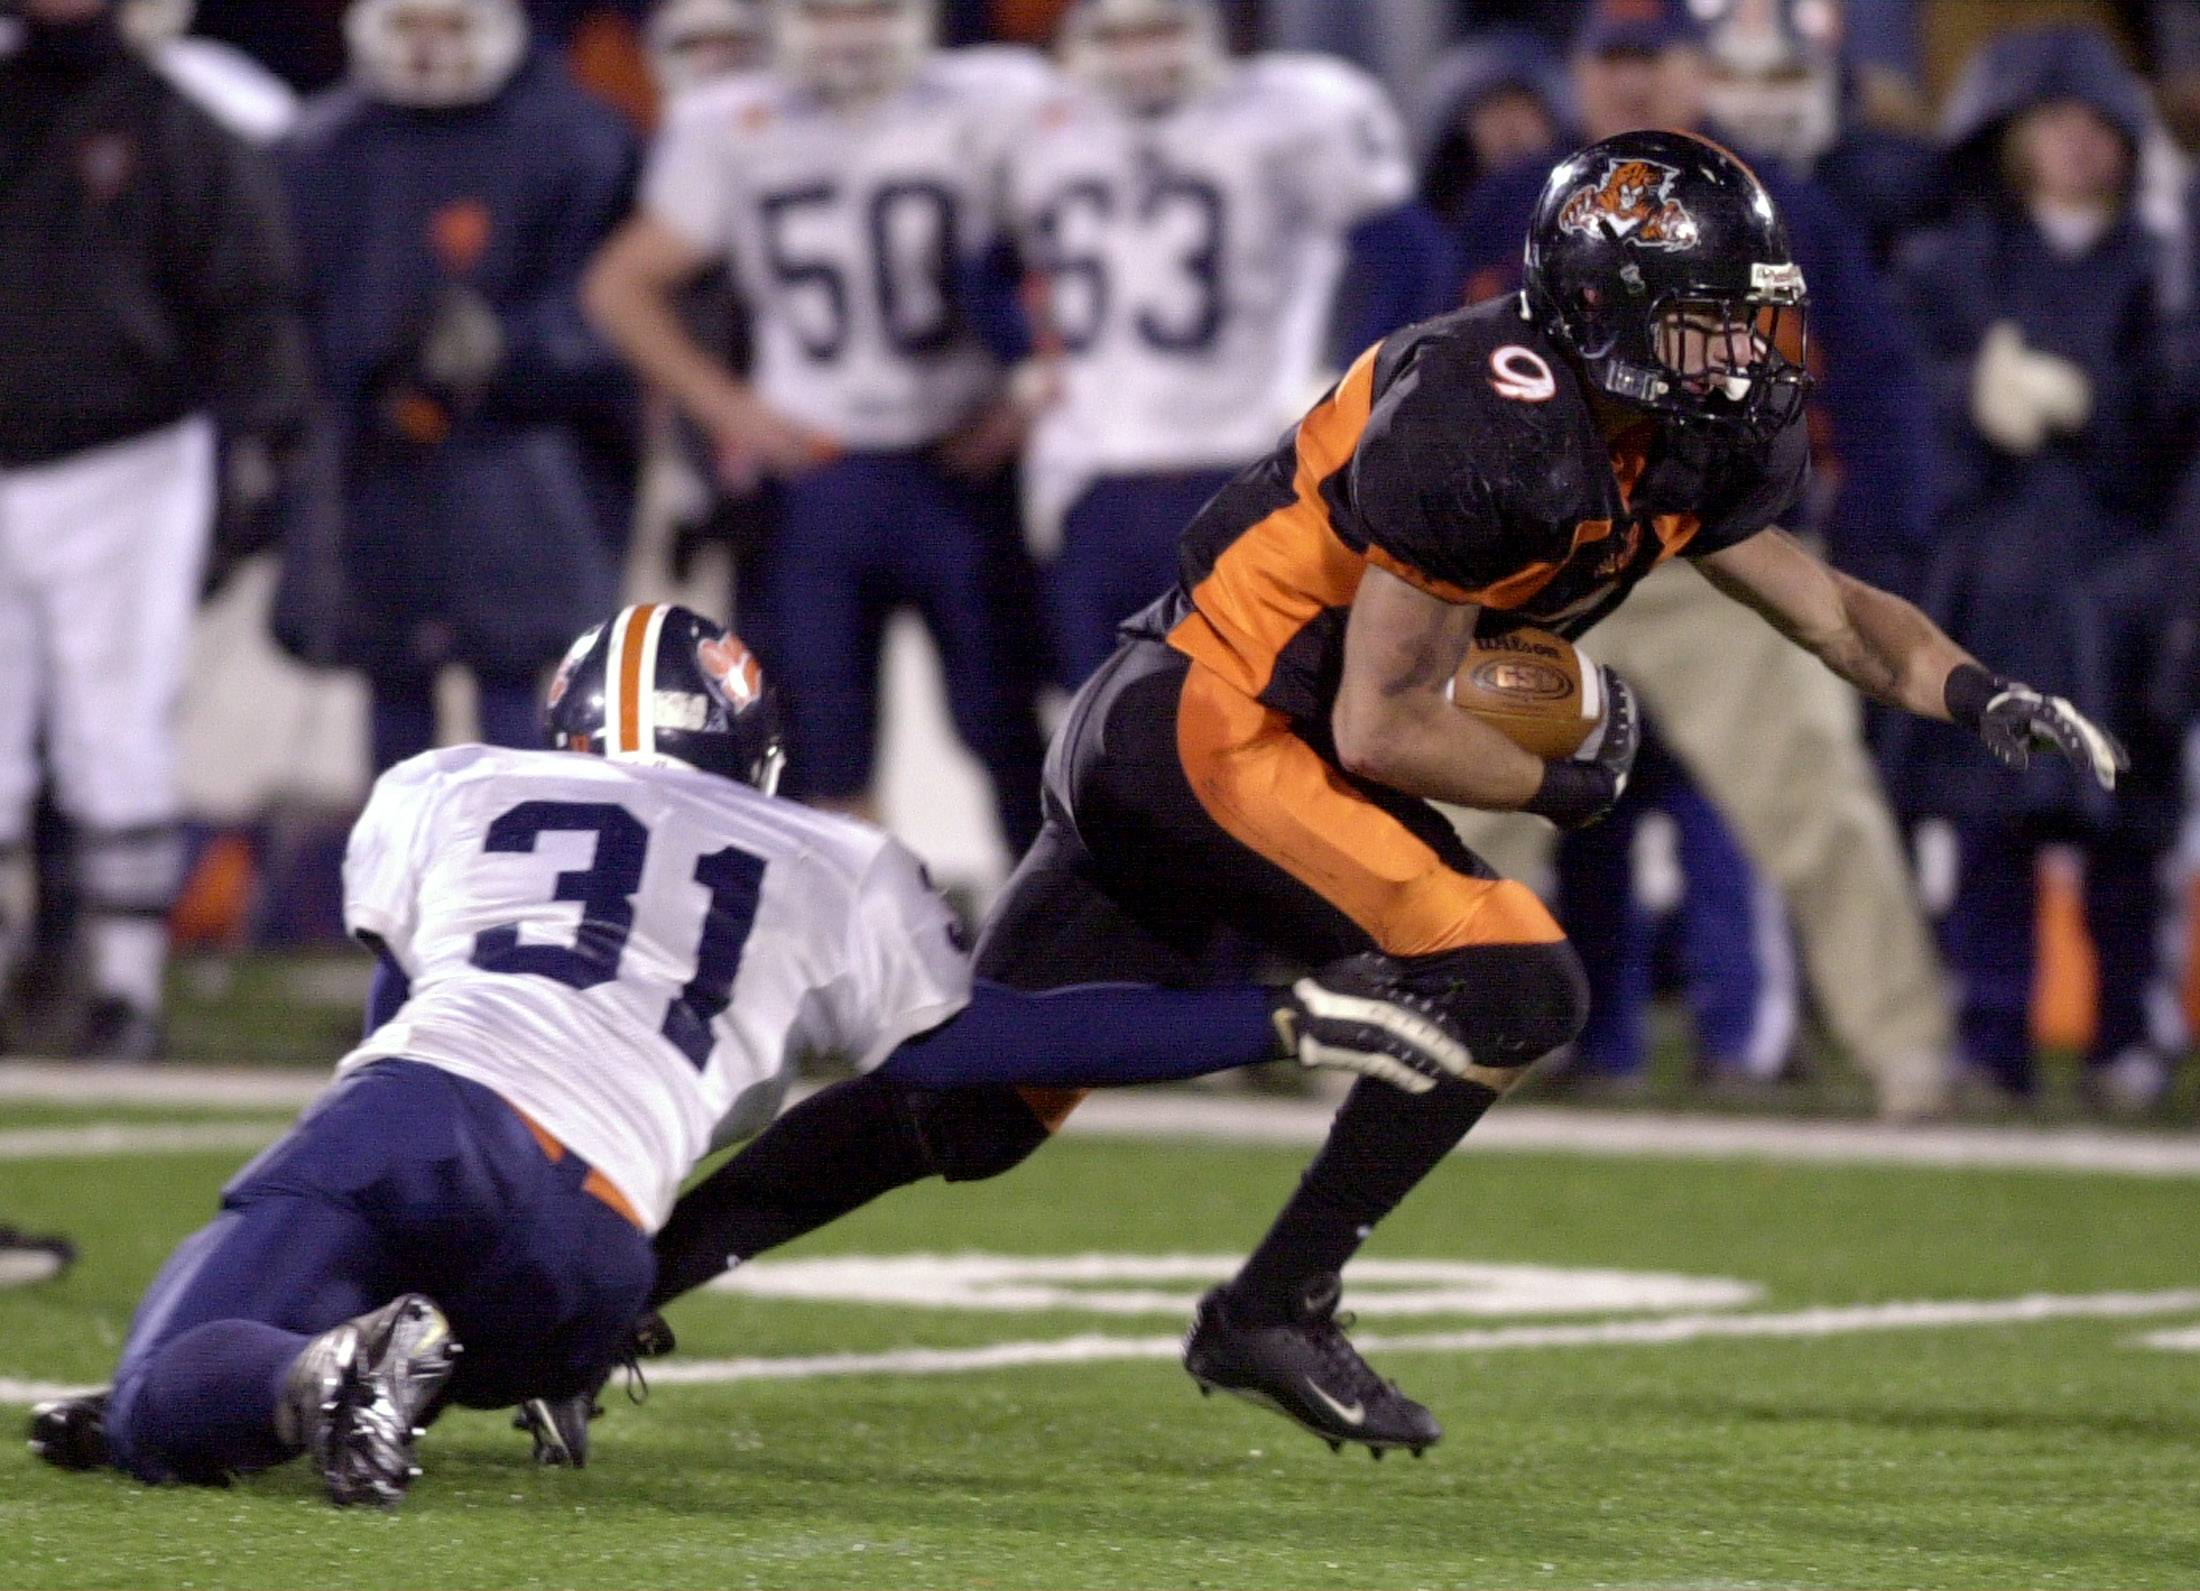 Libertyville's Santino Panico eludes Oswego's Adrian Pyneburg for a long gain in the fourth quarter of the Wildcats' 28-21 loss in double overtime in the 2003 Class 7A state title game.